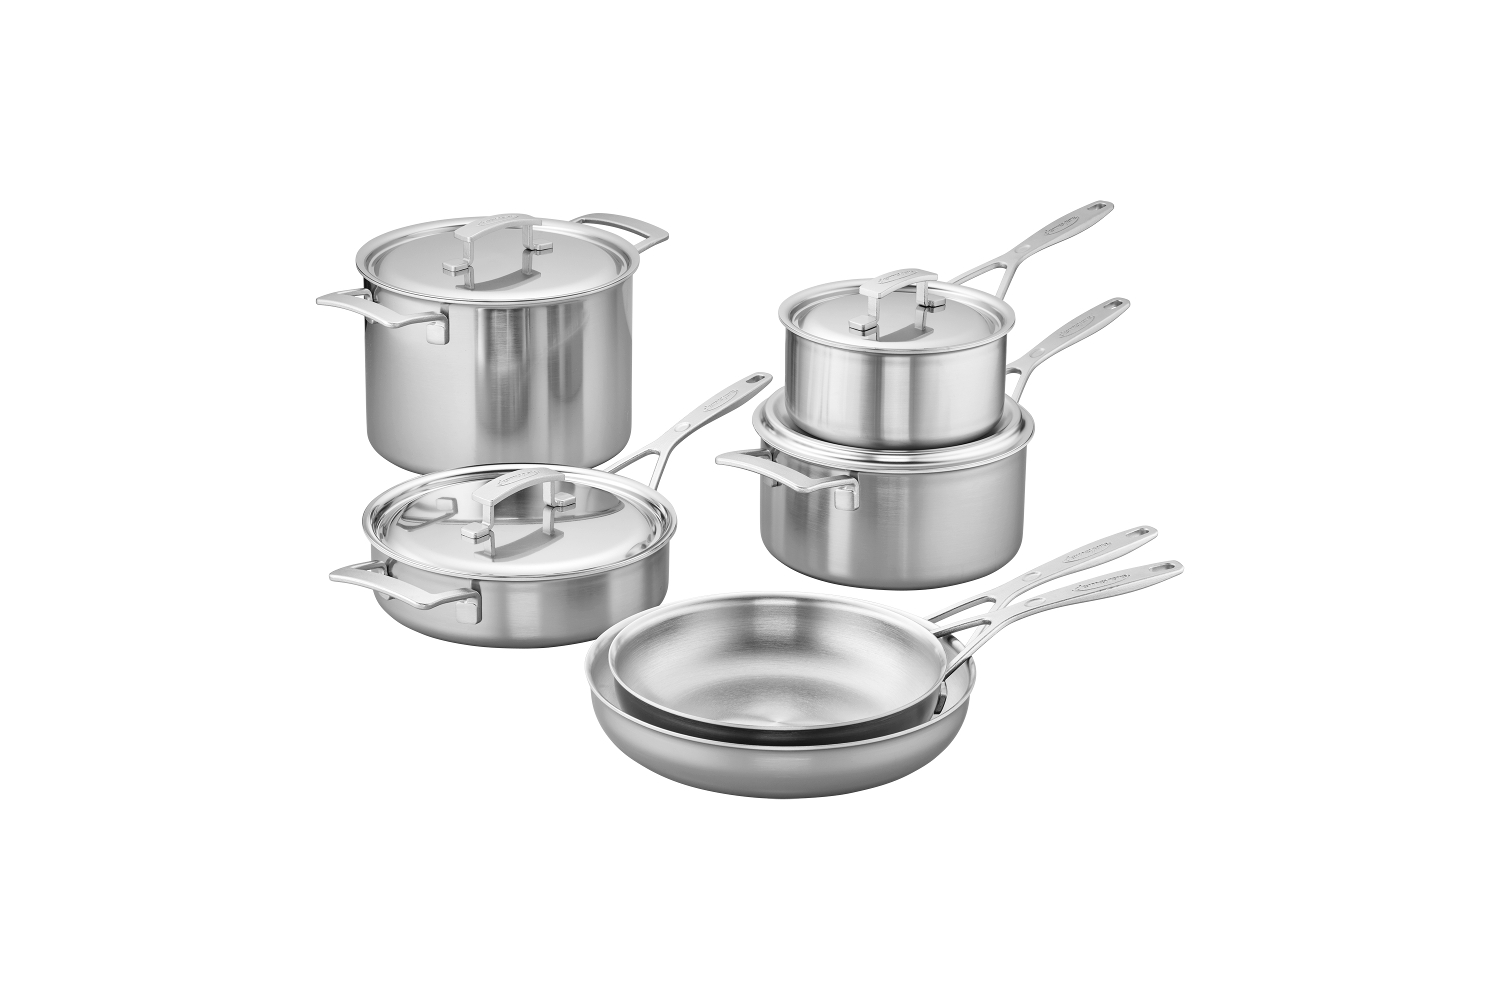 Demeyere Industry5 Stainless Steel 10 Piece Cookware Set